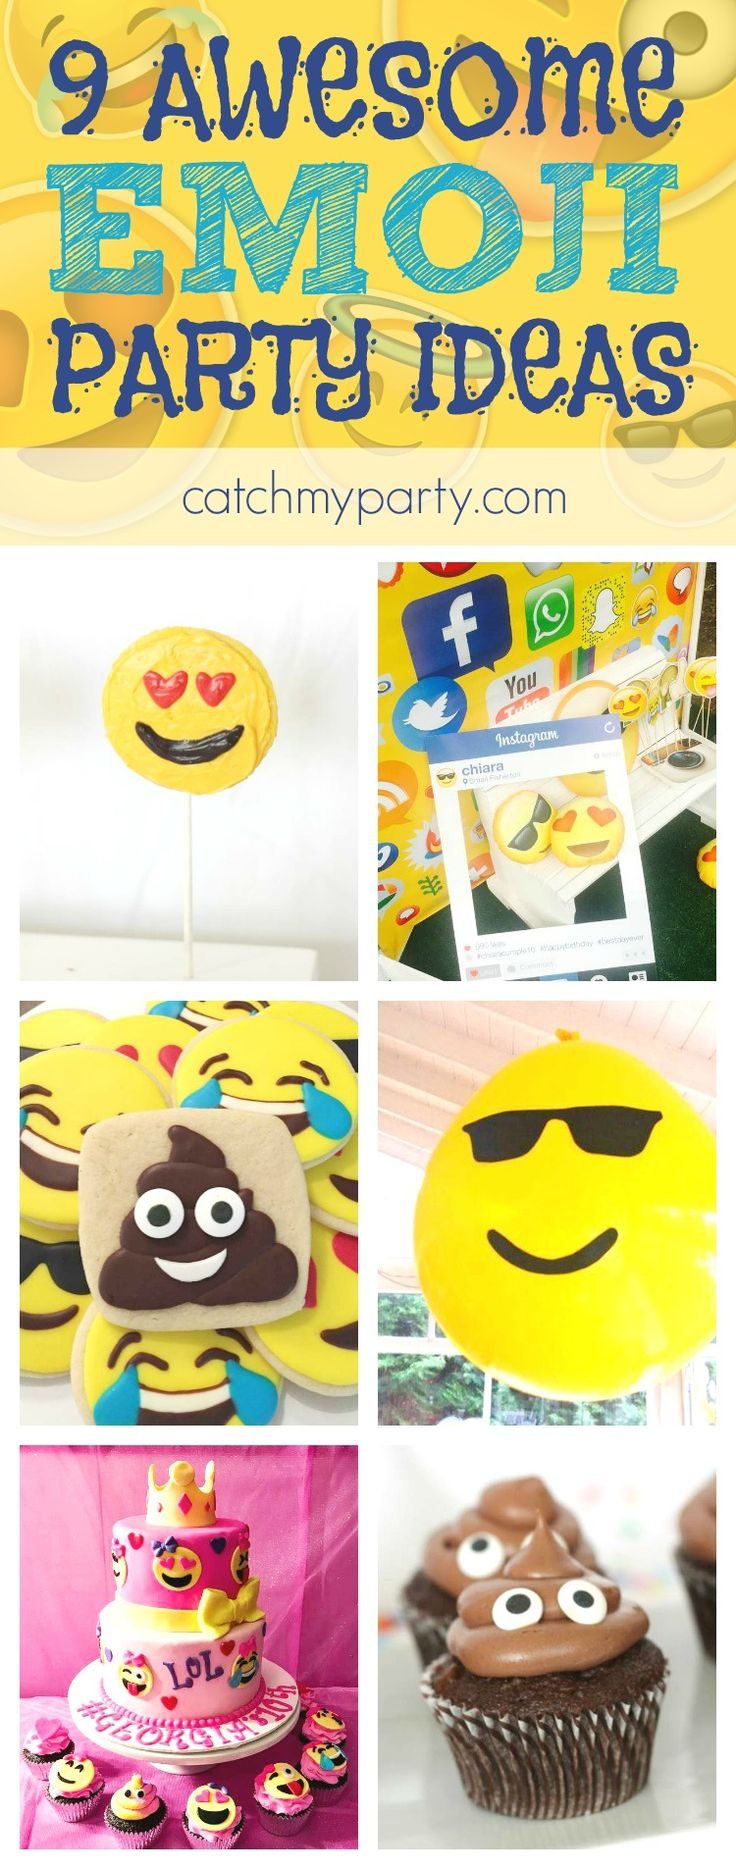 9 awesome Emoji party ideas including ideas for cakes, cupcakes, decorations, party favors, etc.   See more party ideas and share yours at CatchMyparty.com